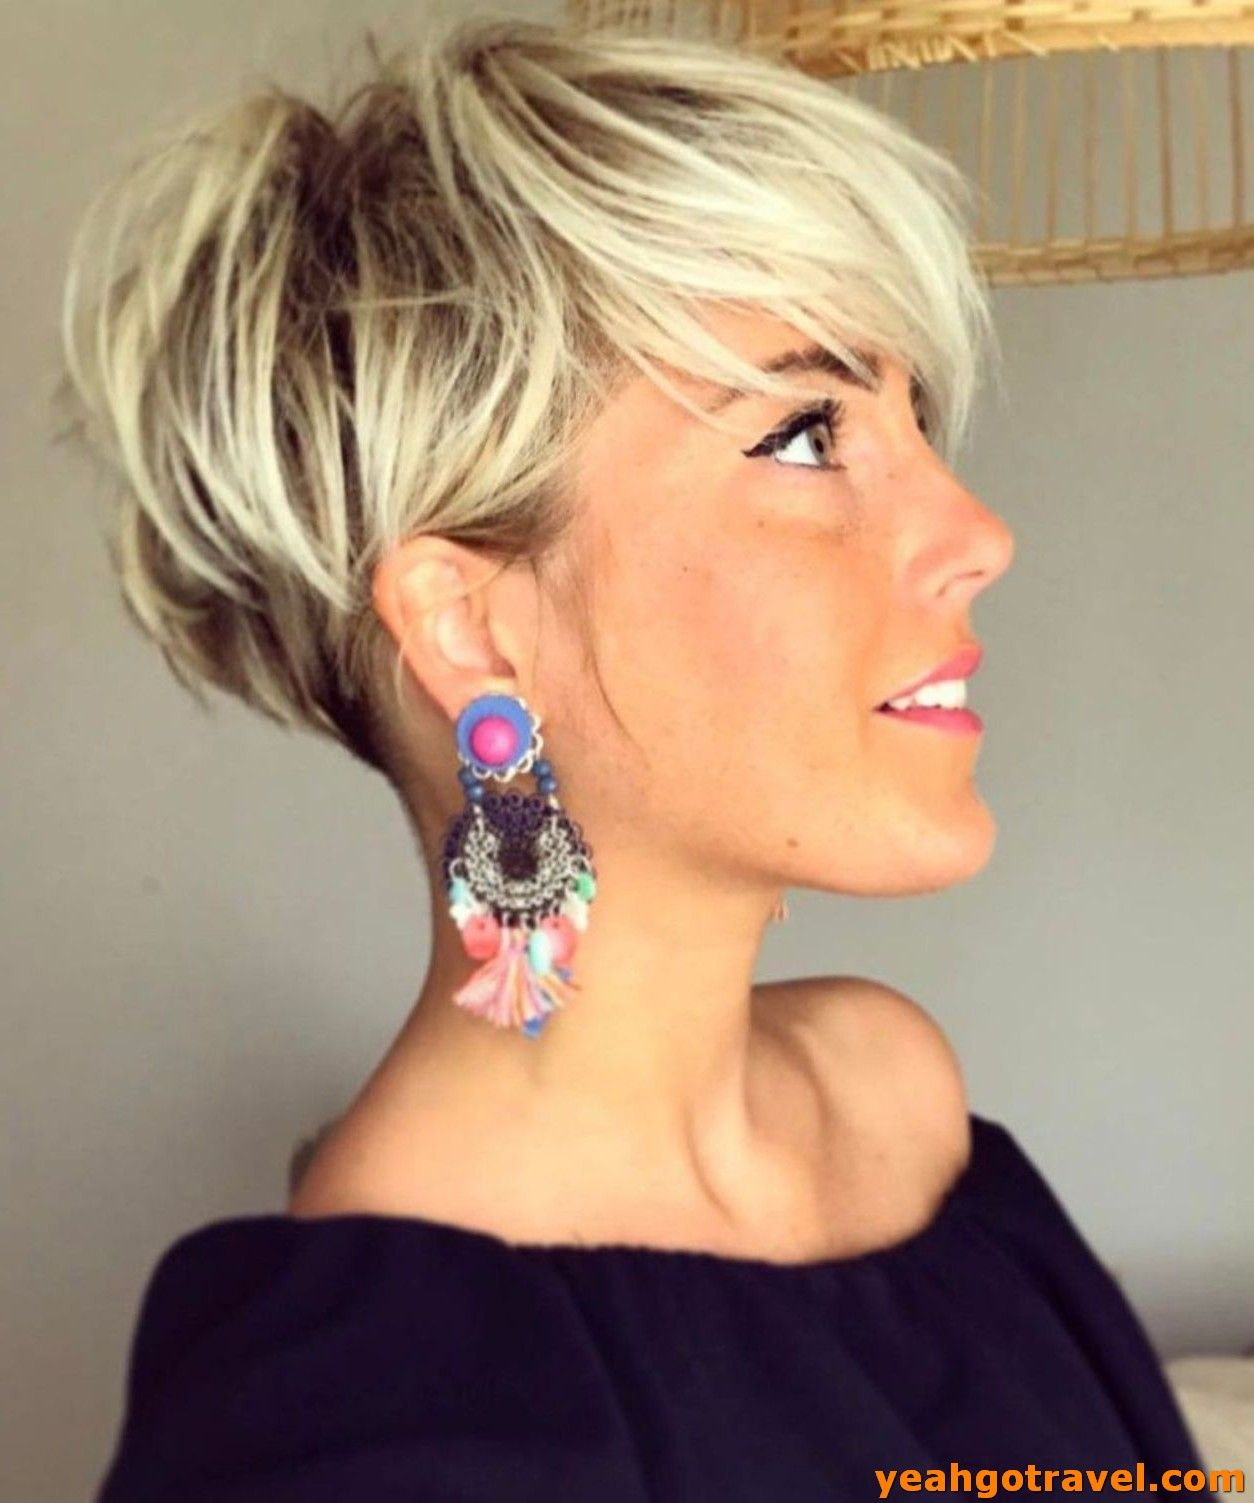 42 Best Short Pixie Cuts We Love For 2019 - Yeahgo